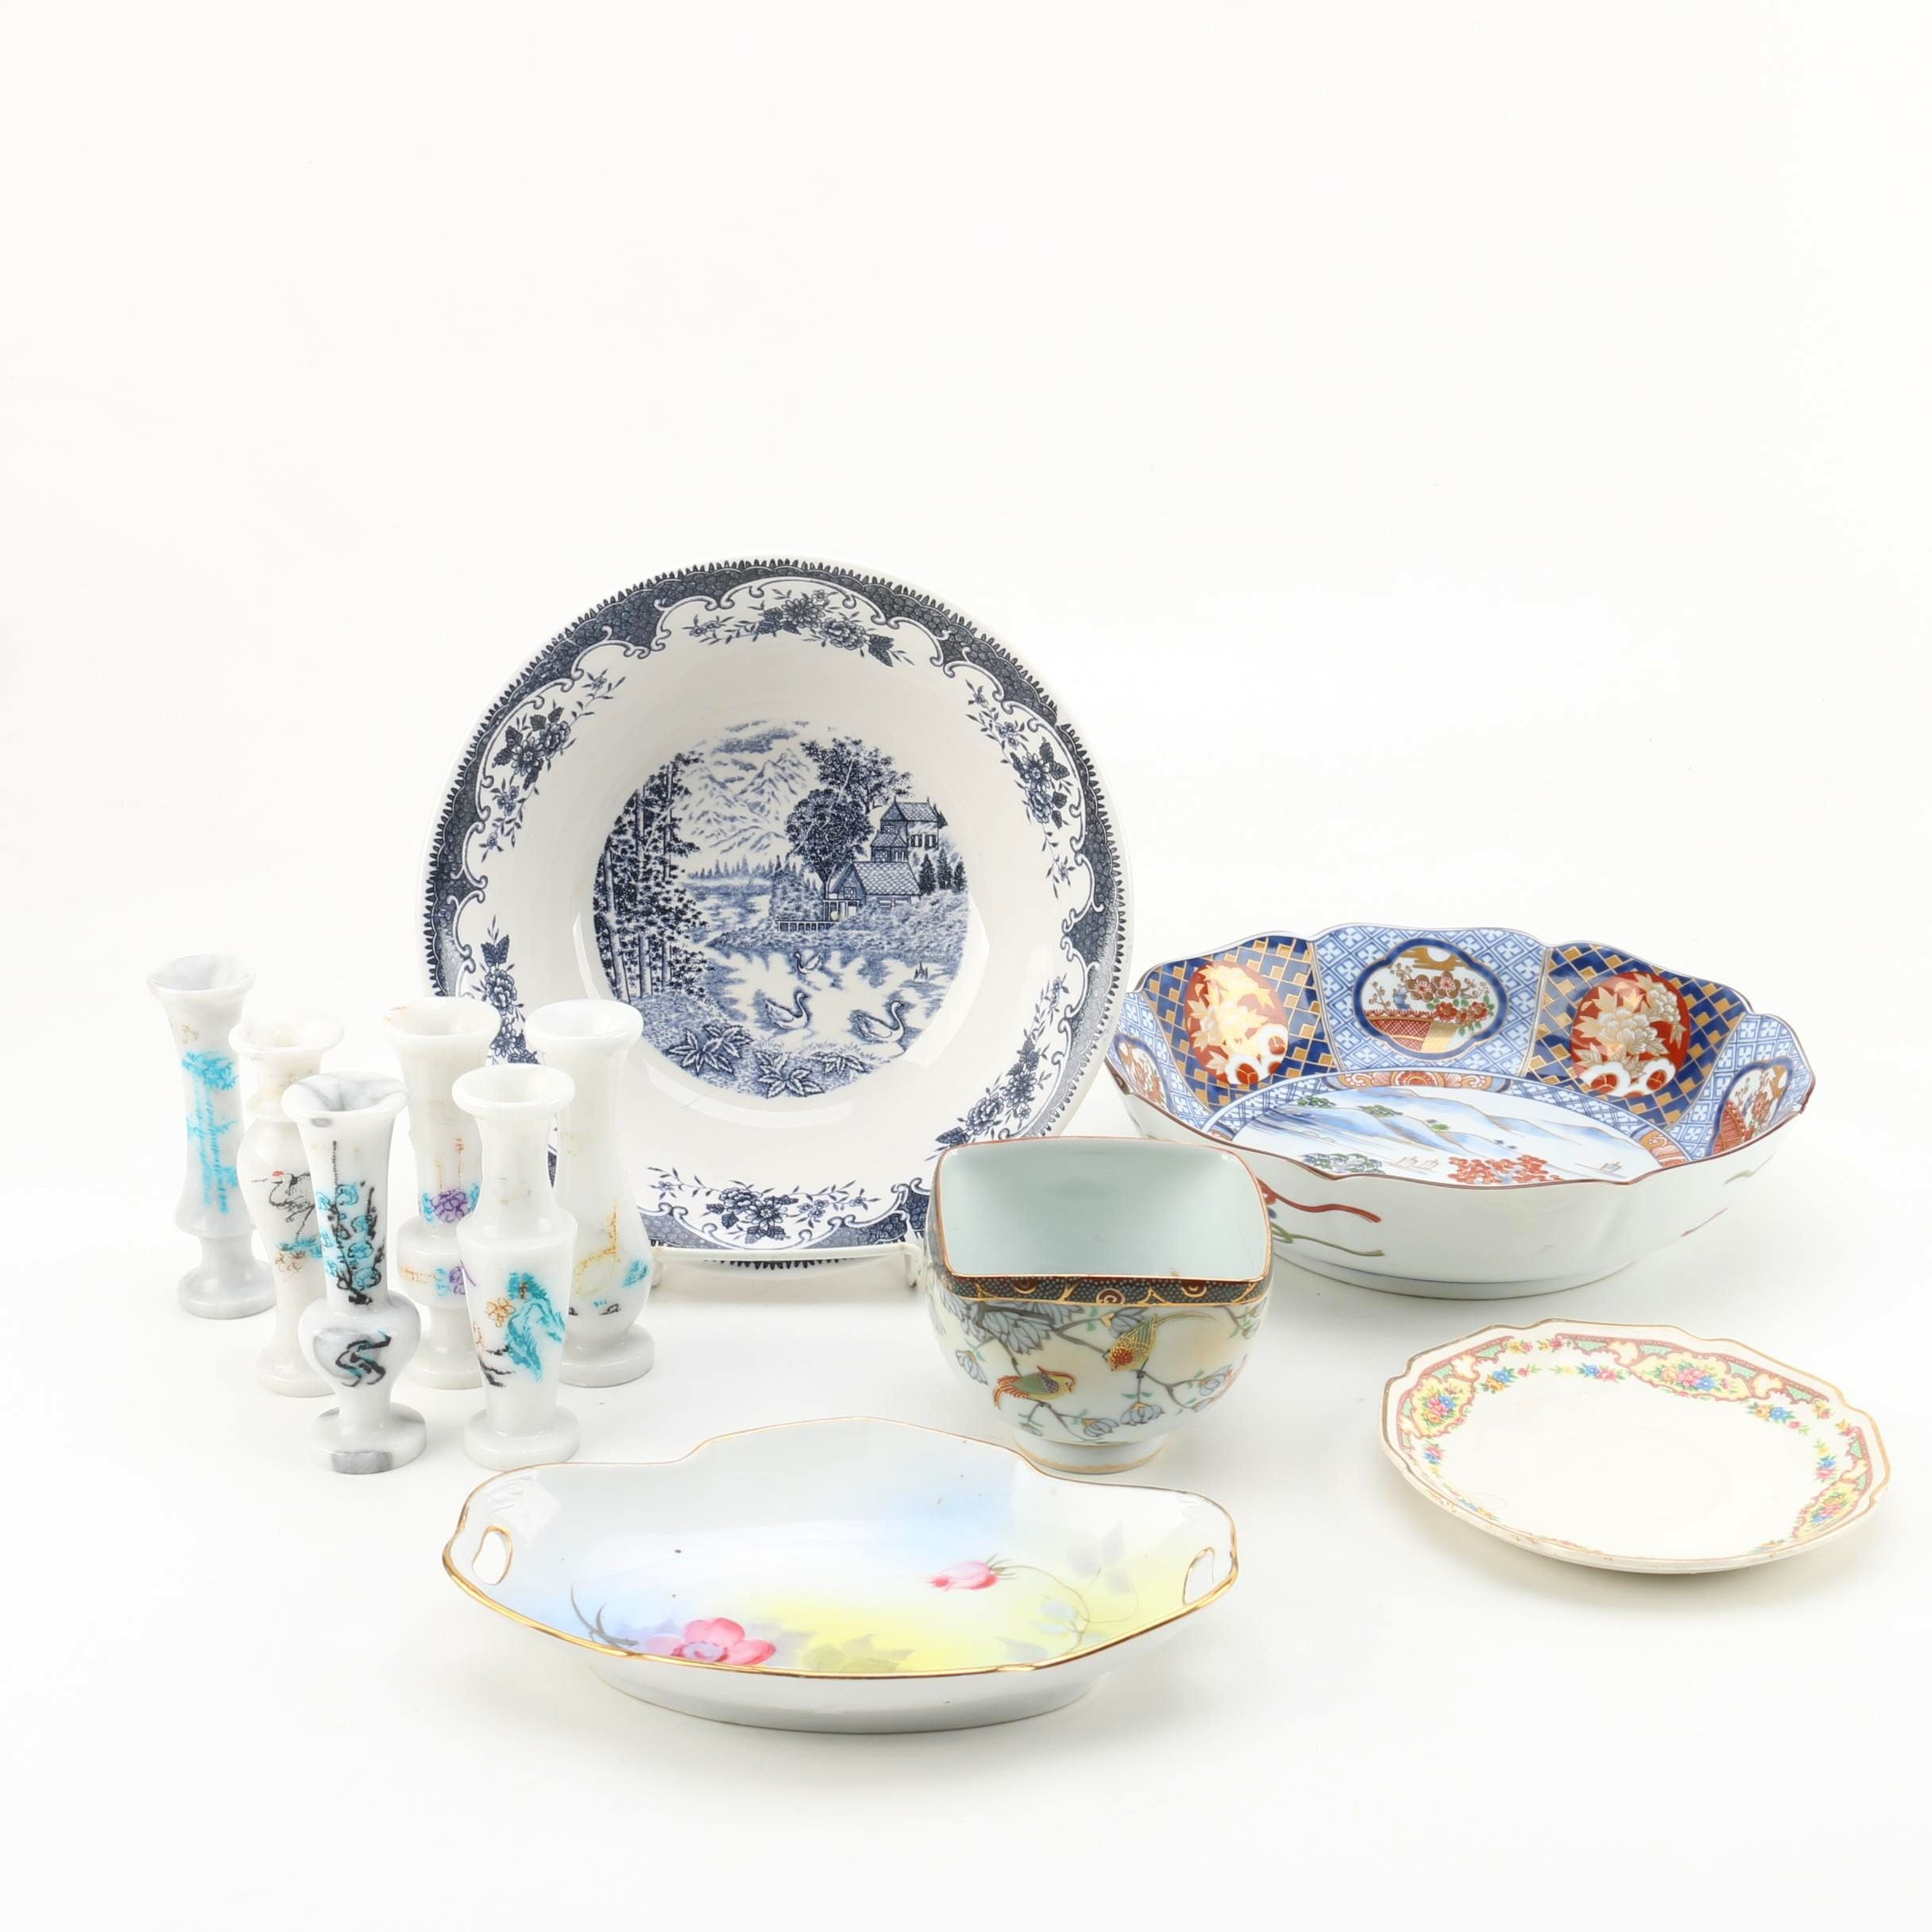 East Asian Tableware and Accessories